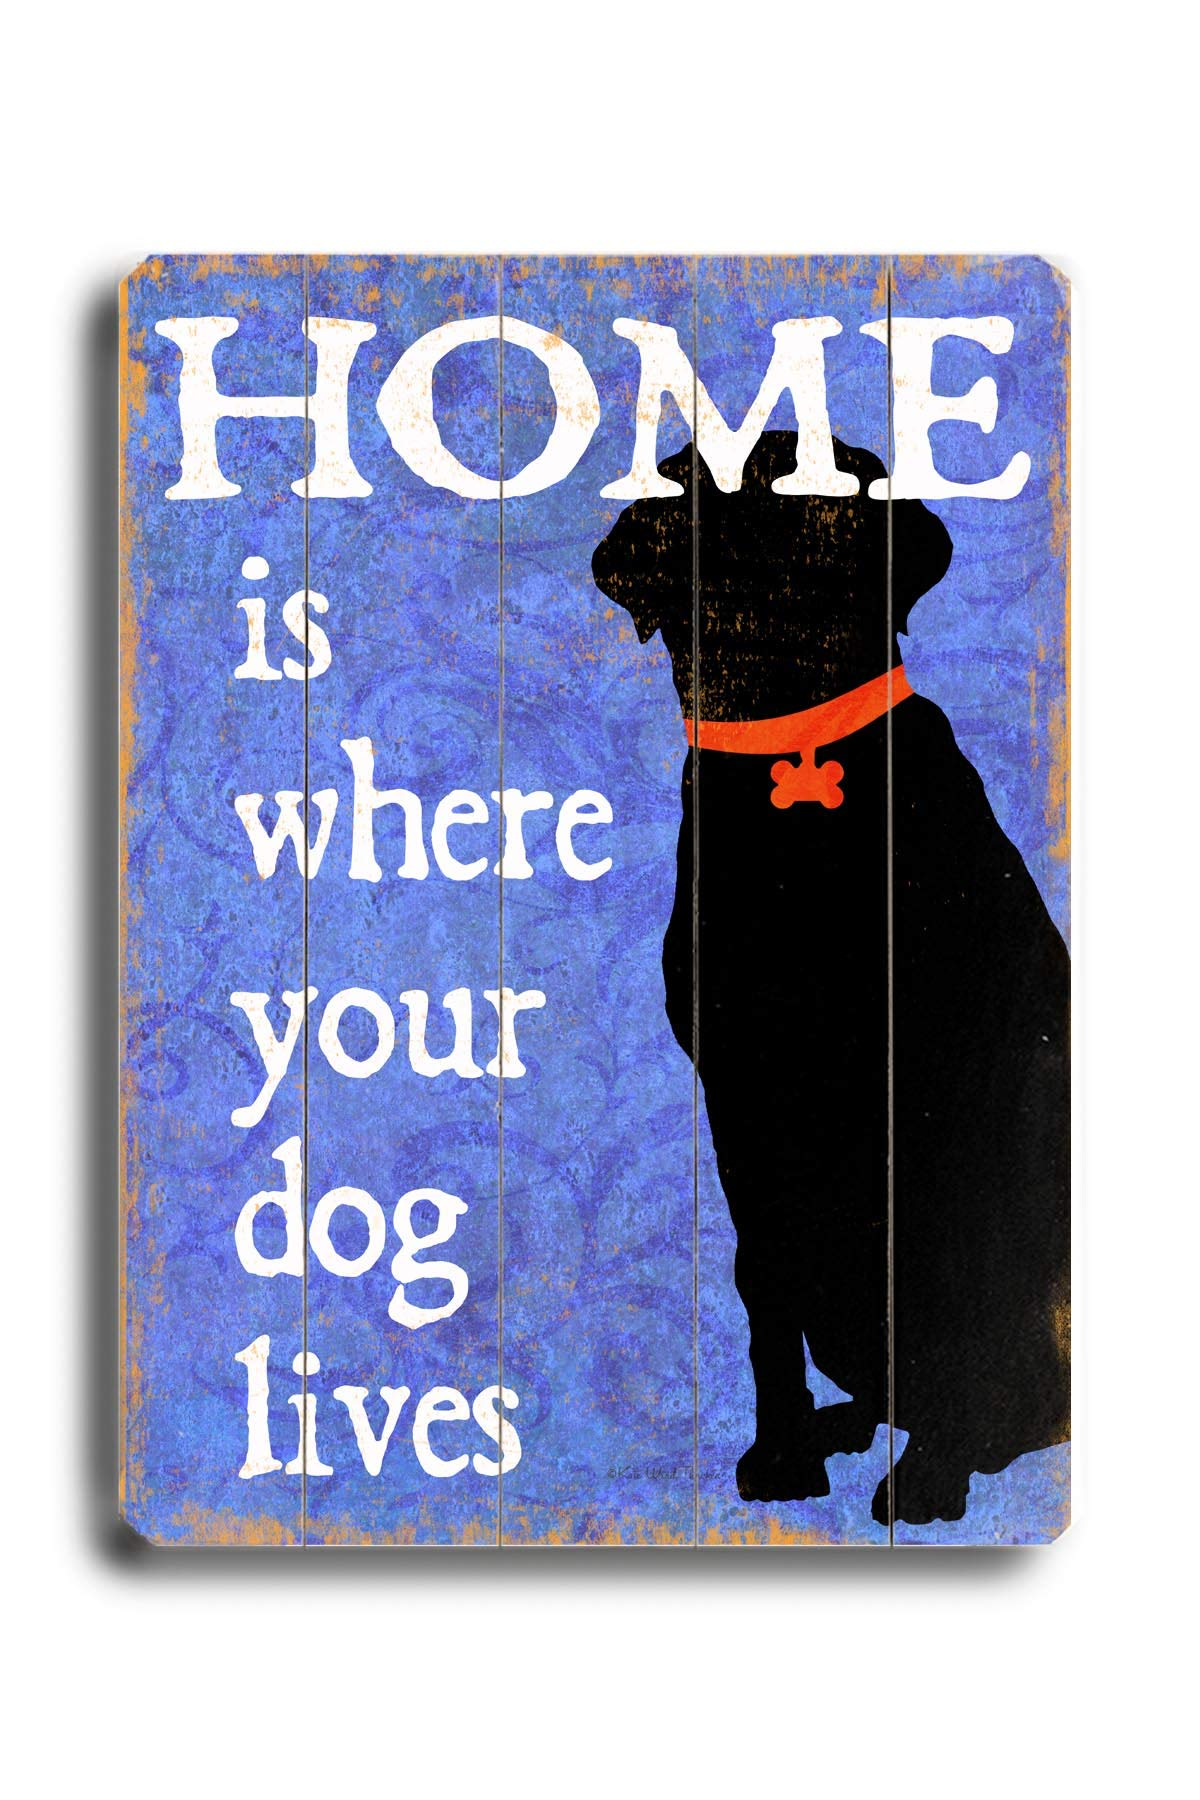 Home is Where Your Dog Lives - Wood Wall Decor by Next Day Art 30 X 40